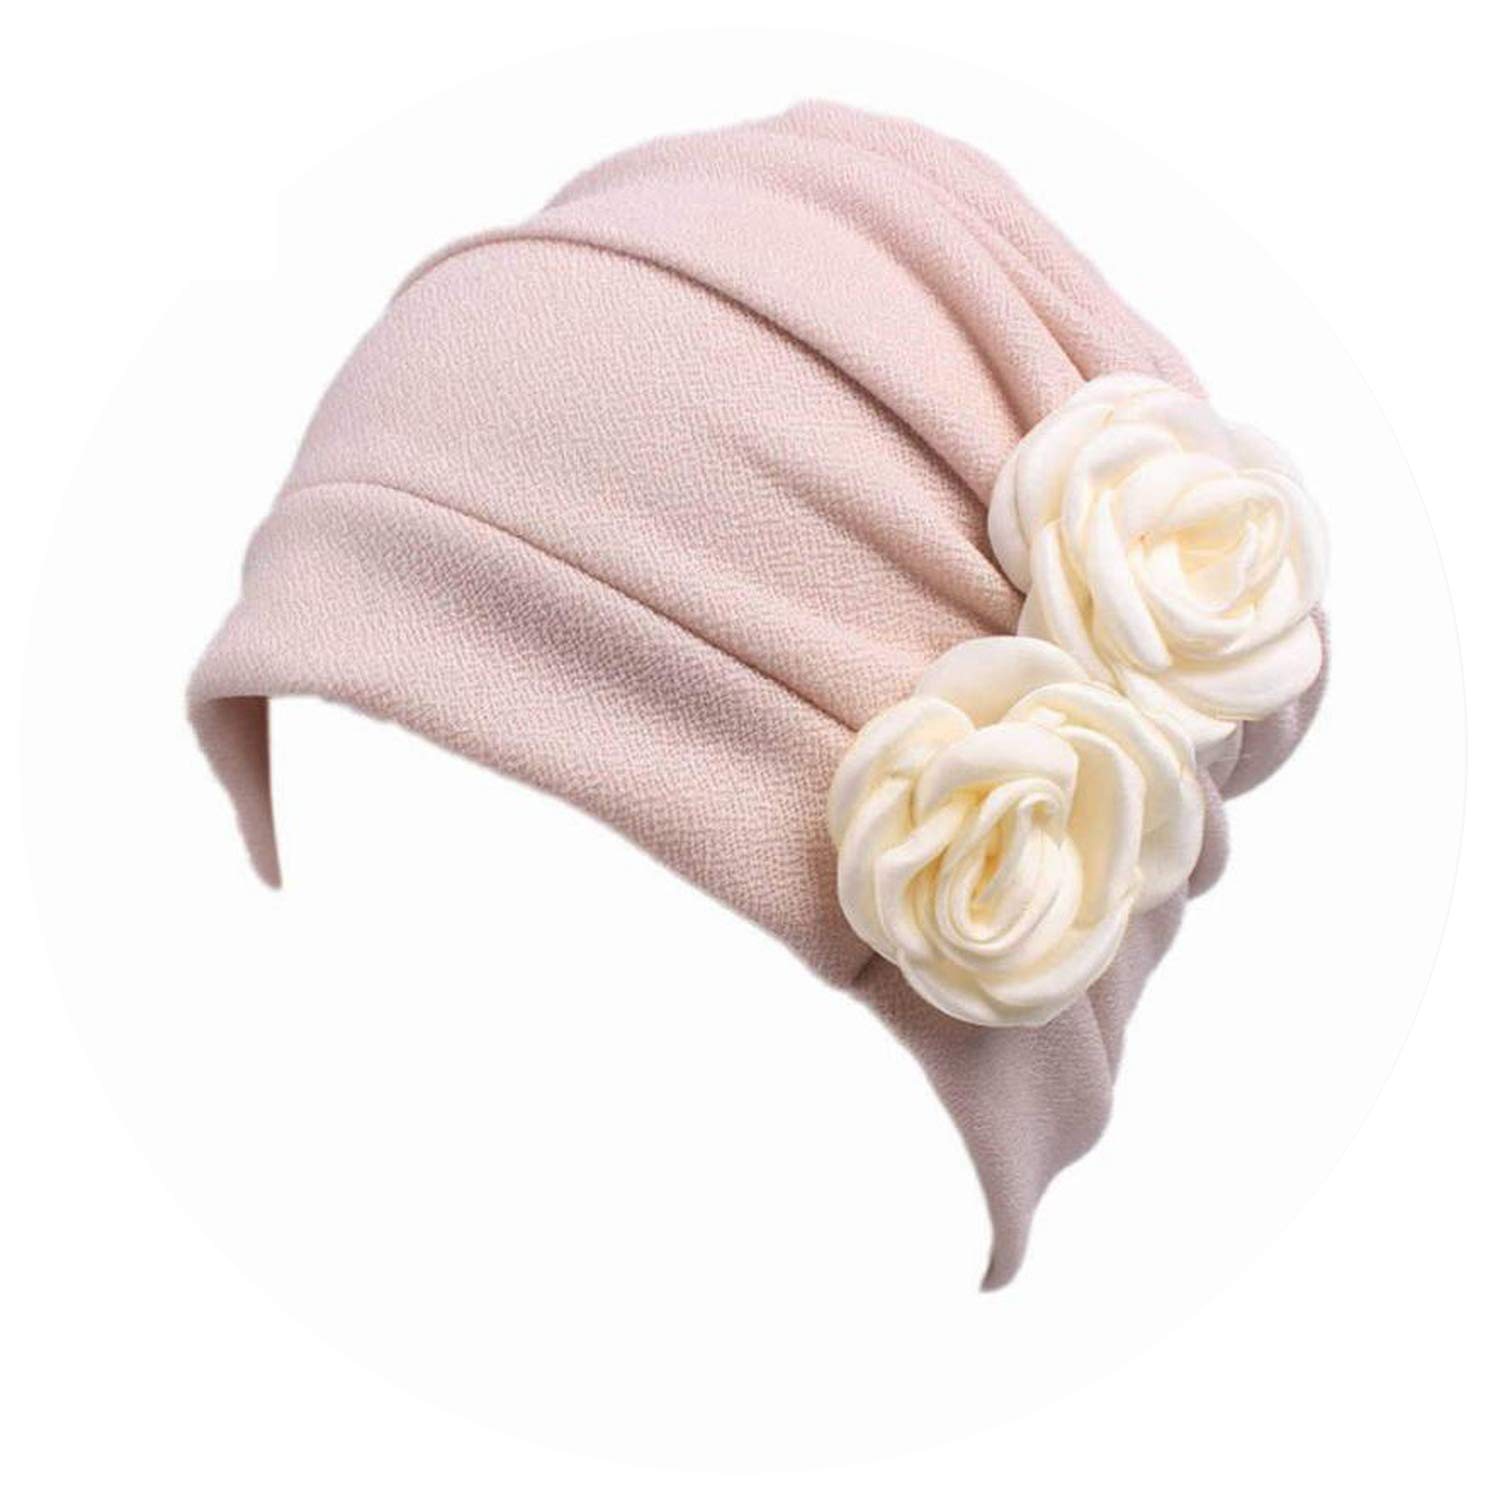 Retro Floral Winter Hats Beanies Women Classic Turban Head Wrap Cap Gorras Mujer Simple Flower Hats, Beige at Amazon Womens Clothing store: